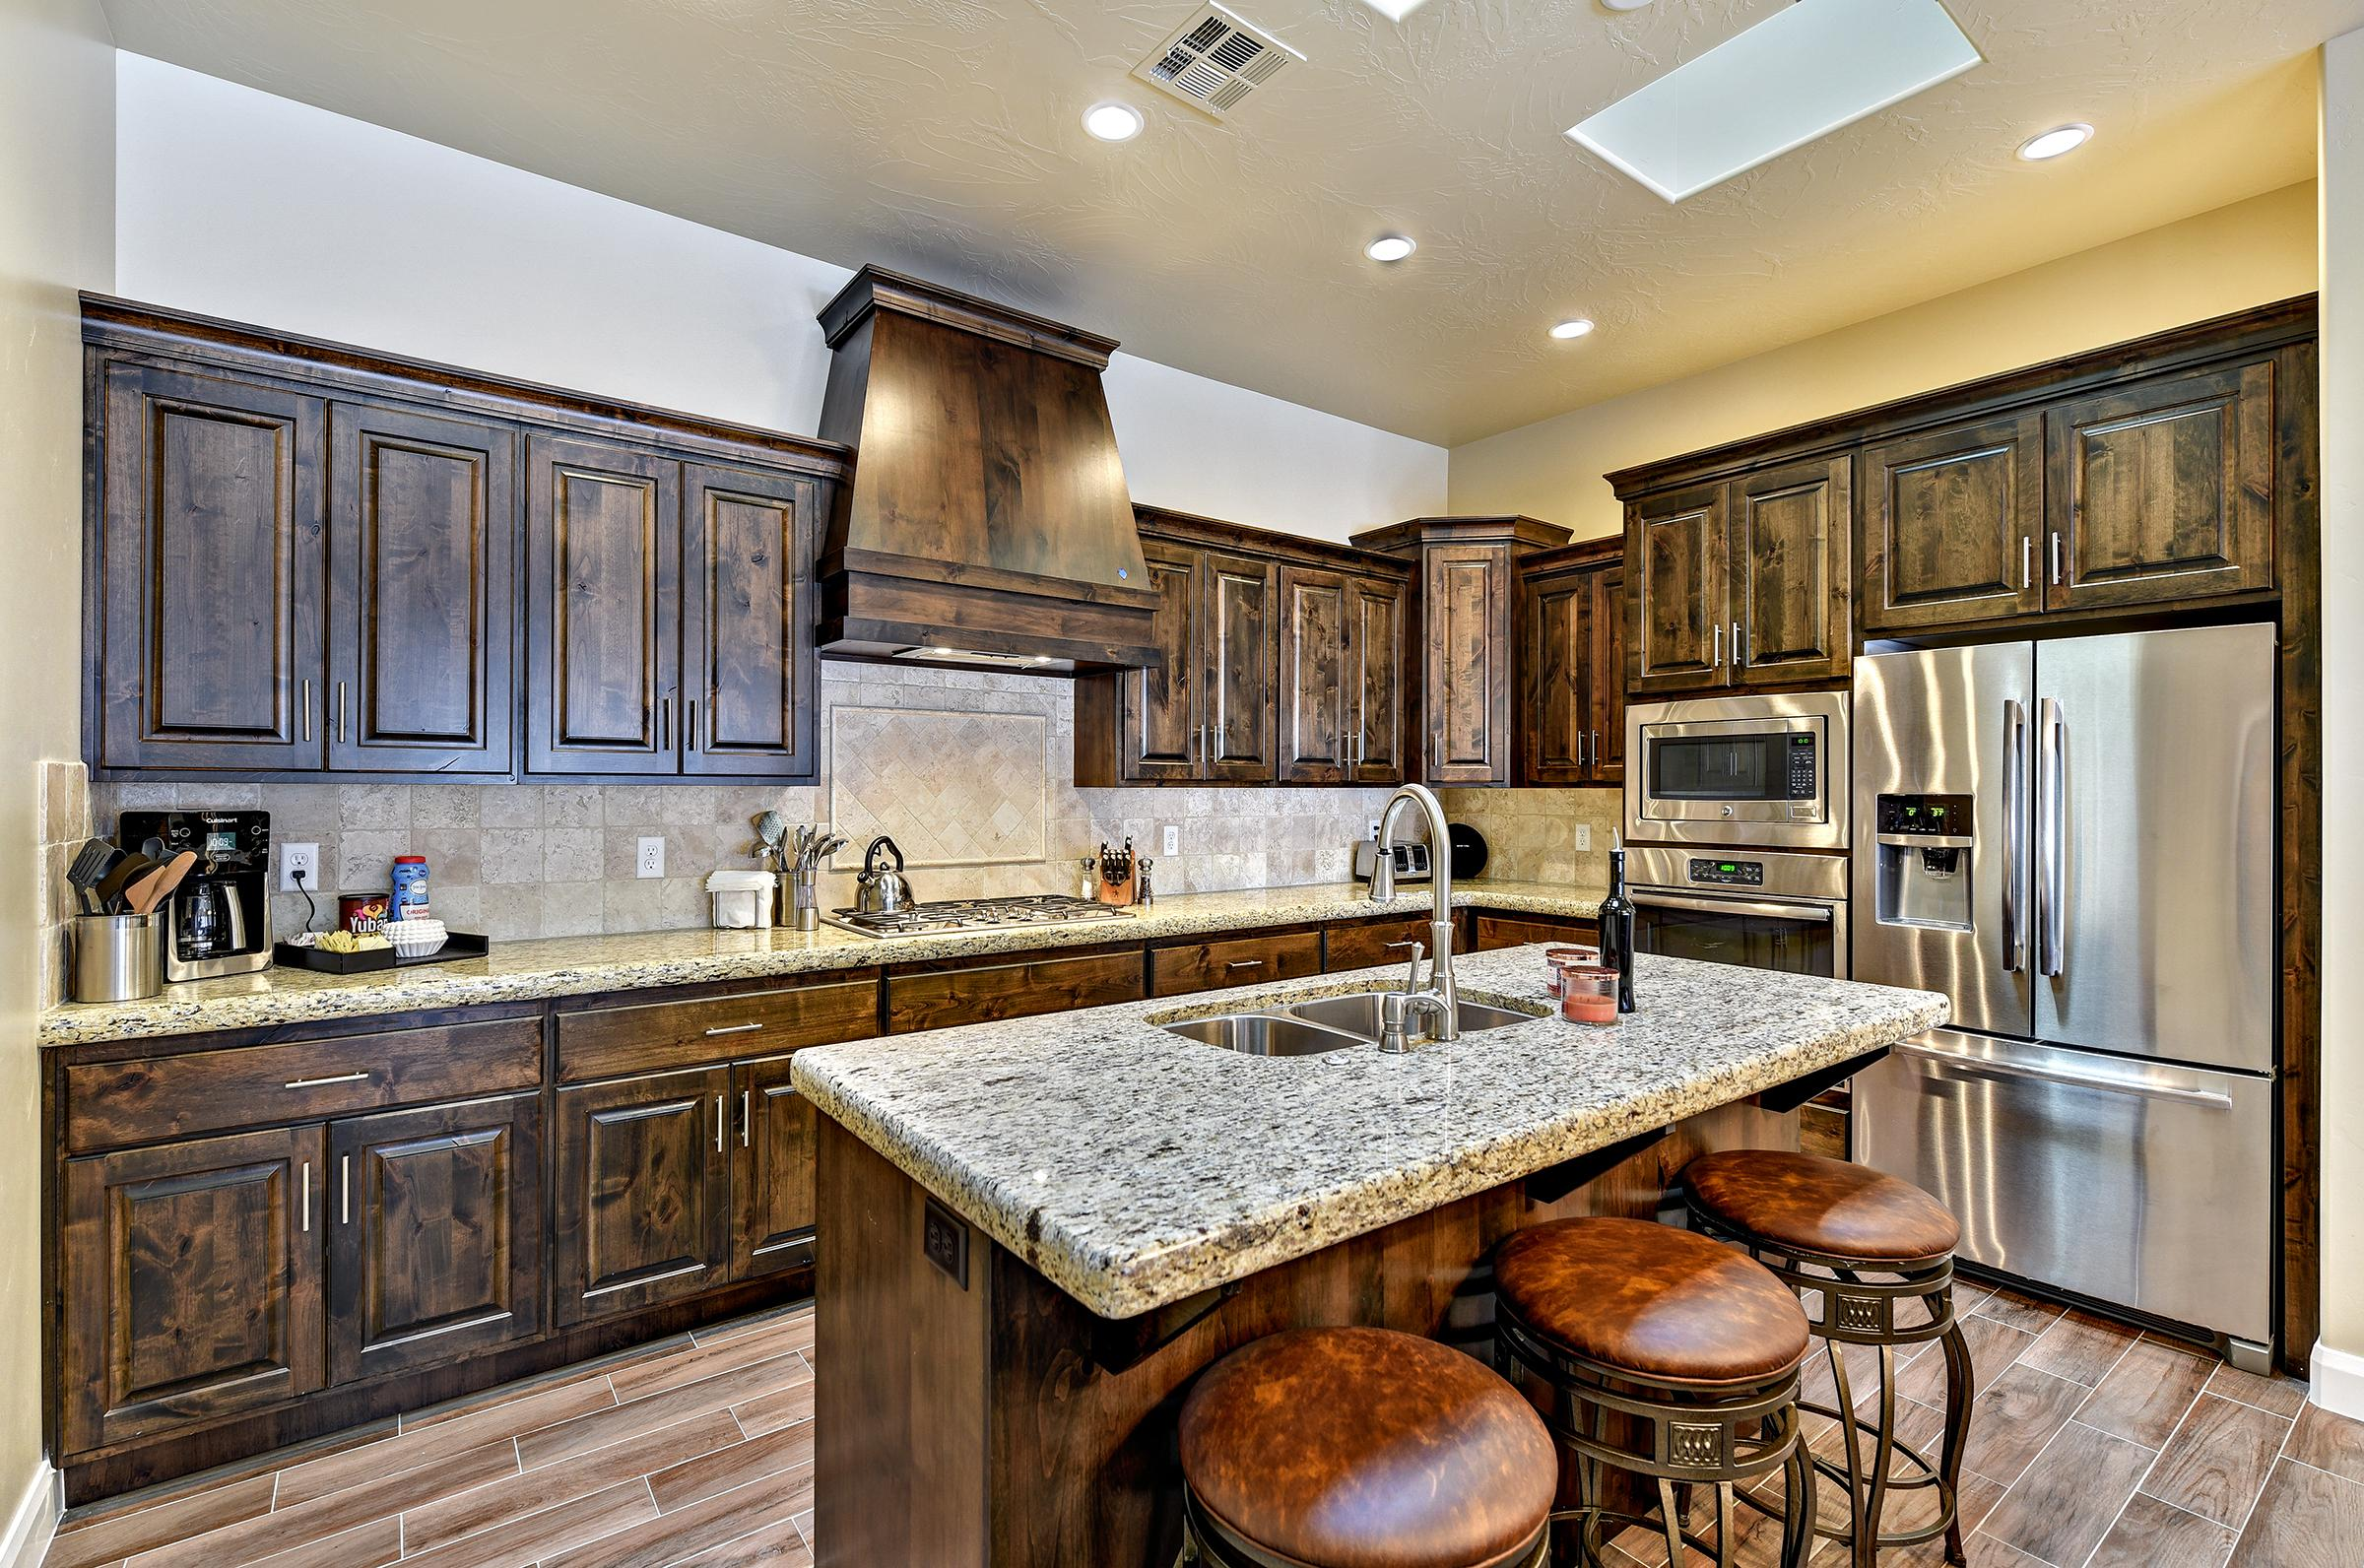 The Kitchen also includes a kitchen island and stainless steel appliances.